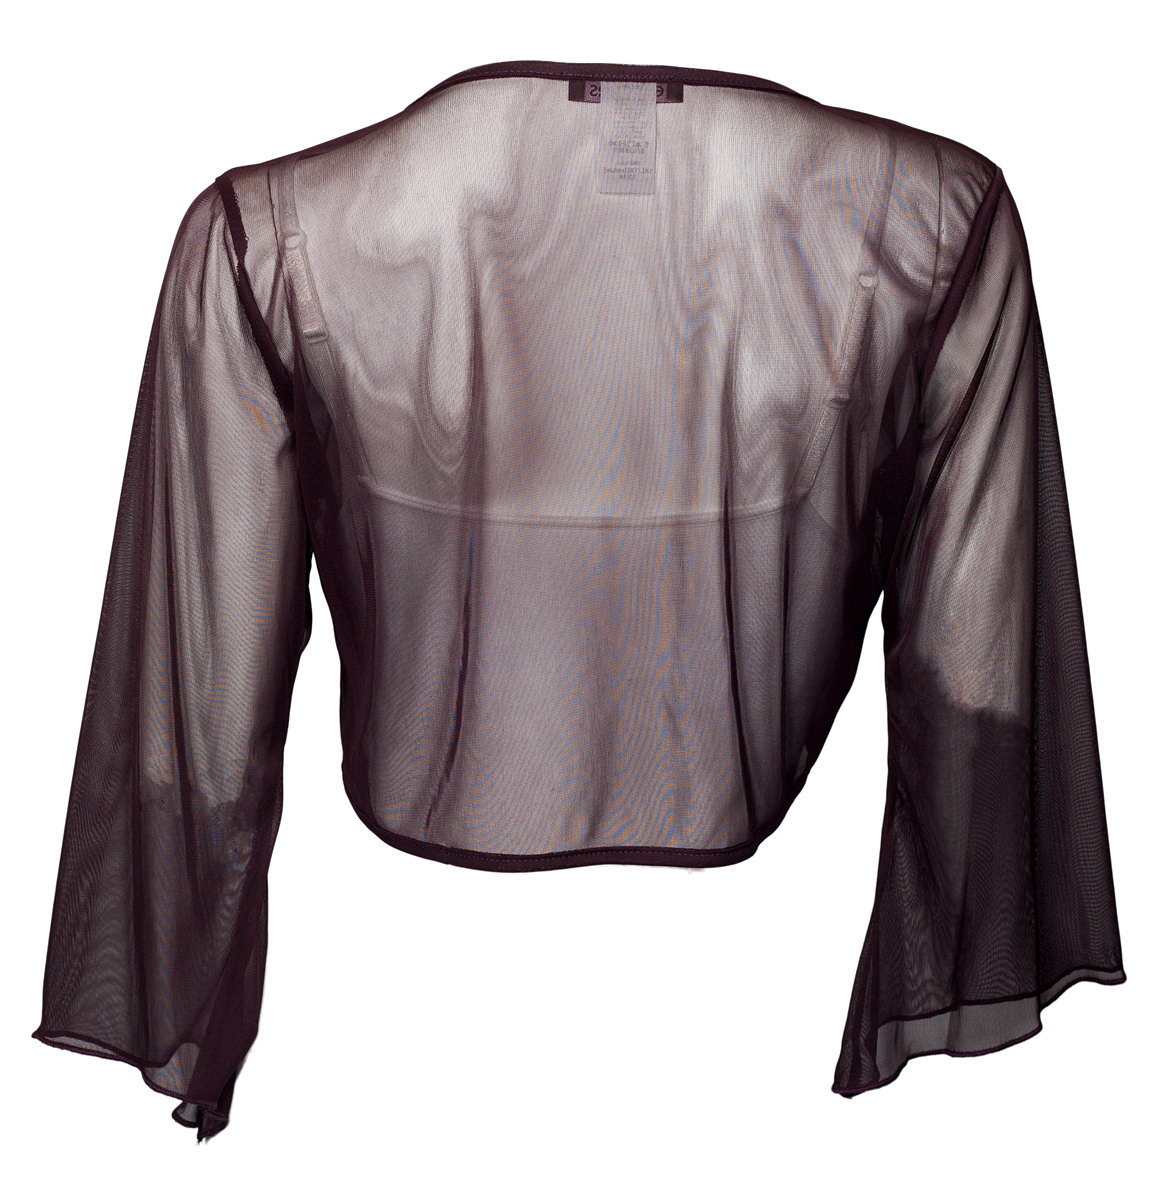 8c20f5716d7 eVogues Apparel - eVogues Plus Size Sexy Purple Sheer Front Tie Bolero Shrug  - Walmart.com